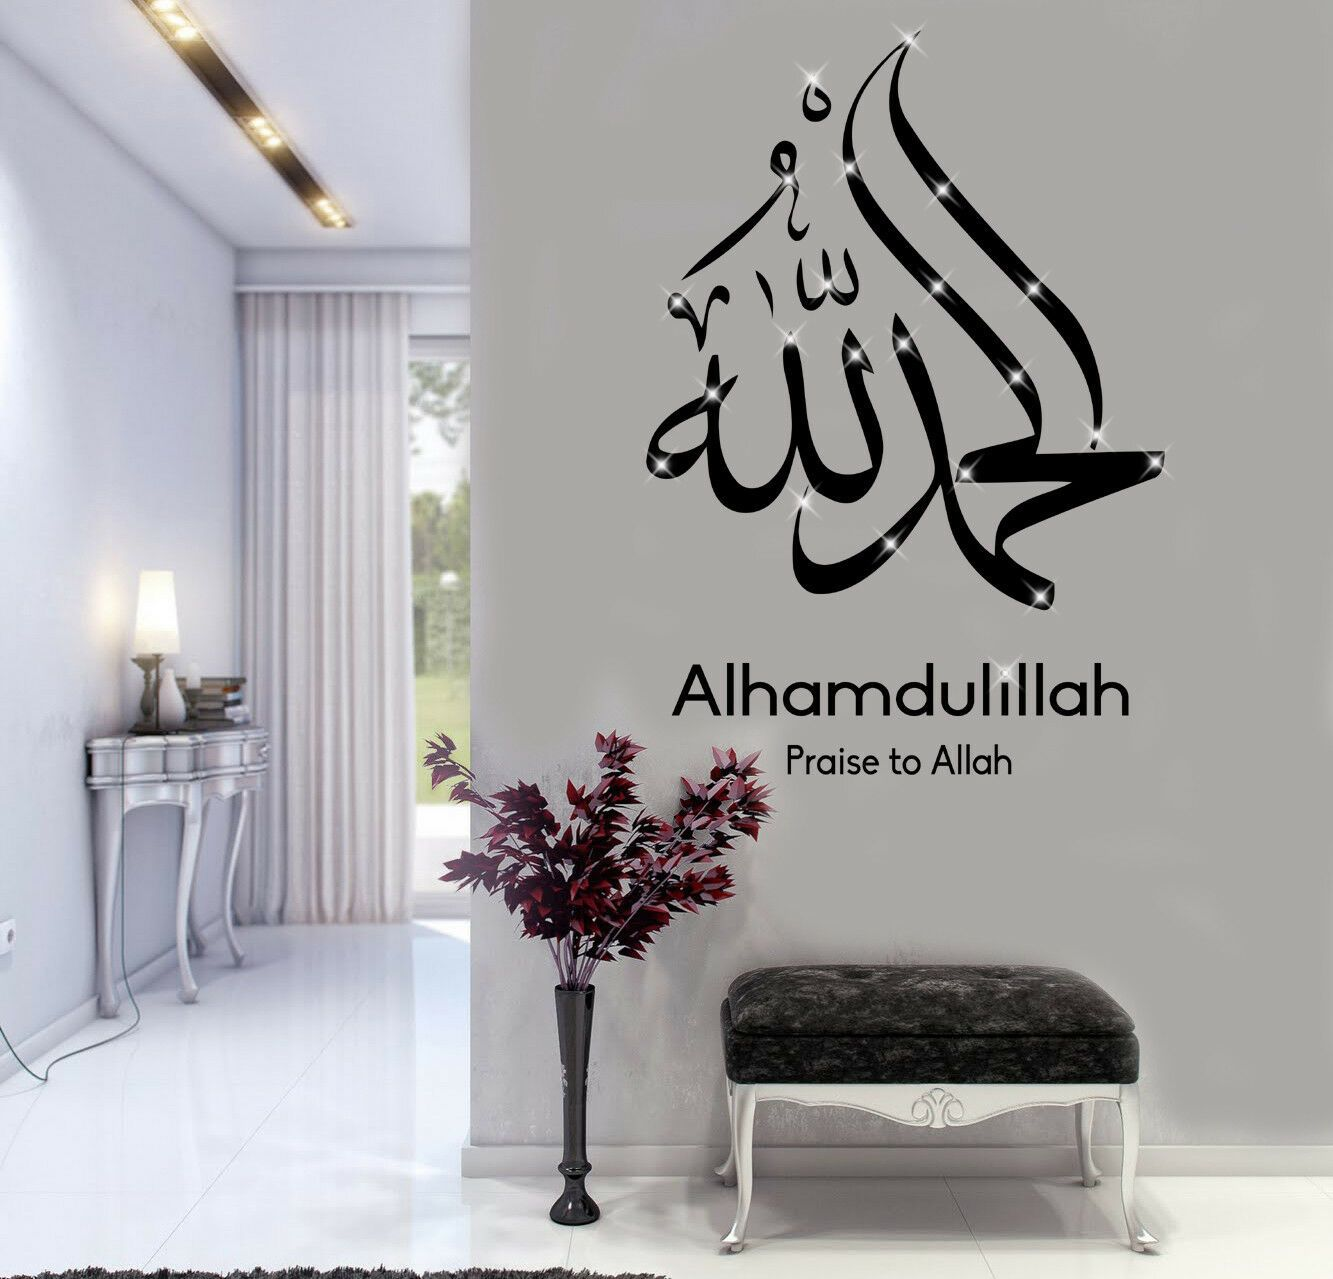 Details about Islamic wall art Stickers, Alhamdulillah